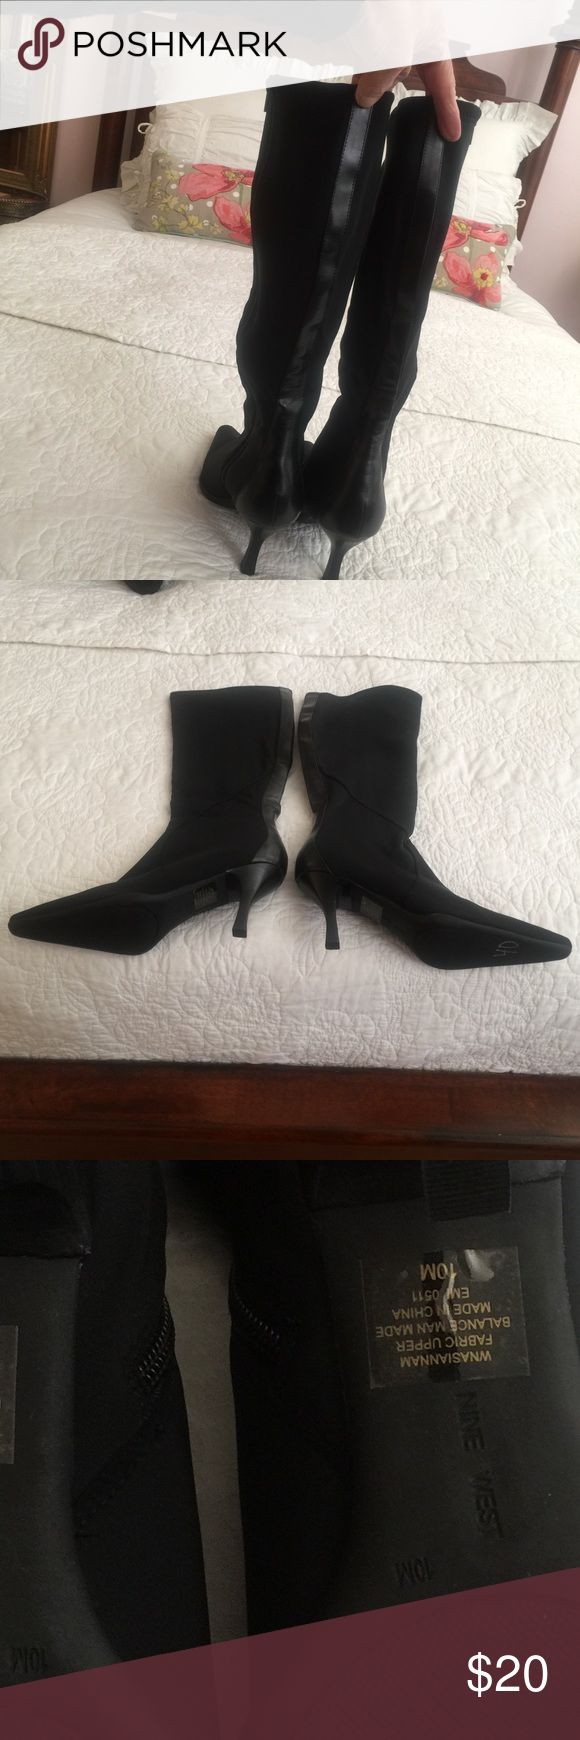 Nine West boots❤👢❤ Nine West black microfiber boots, size 10, never worn. These boots are a little stretchy with leather strip down the back. NWOT Nine West Shoes Heeled Boots